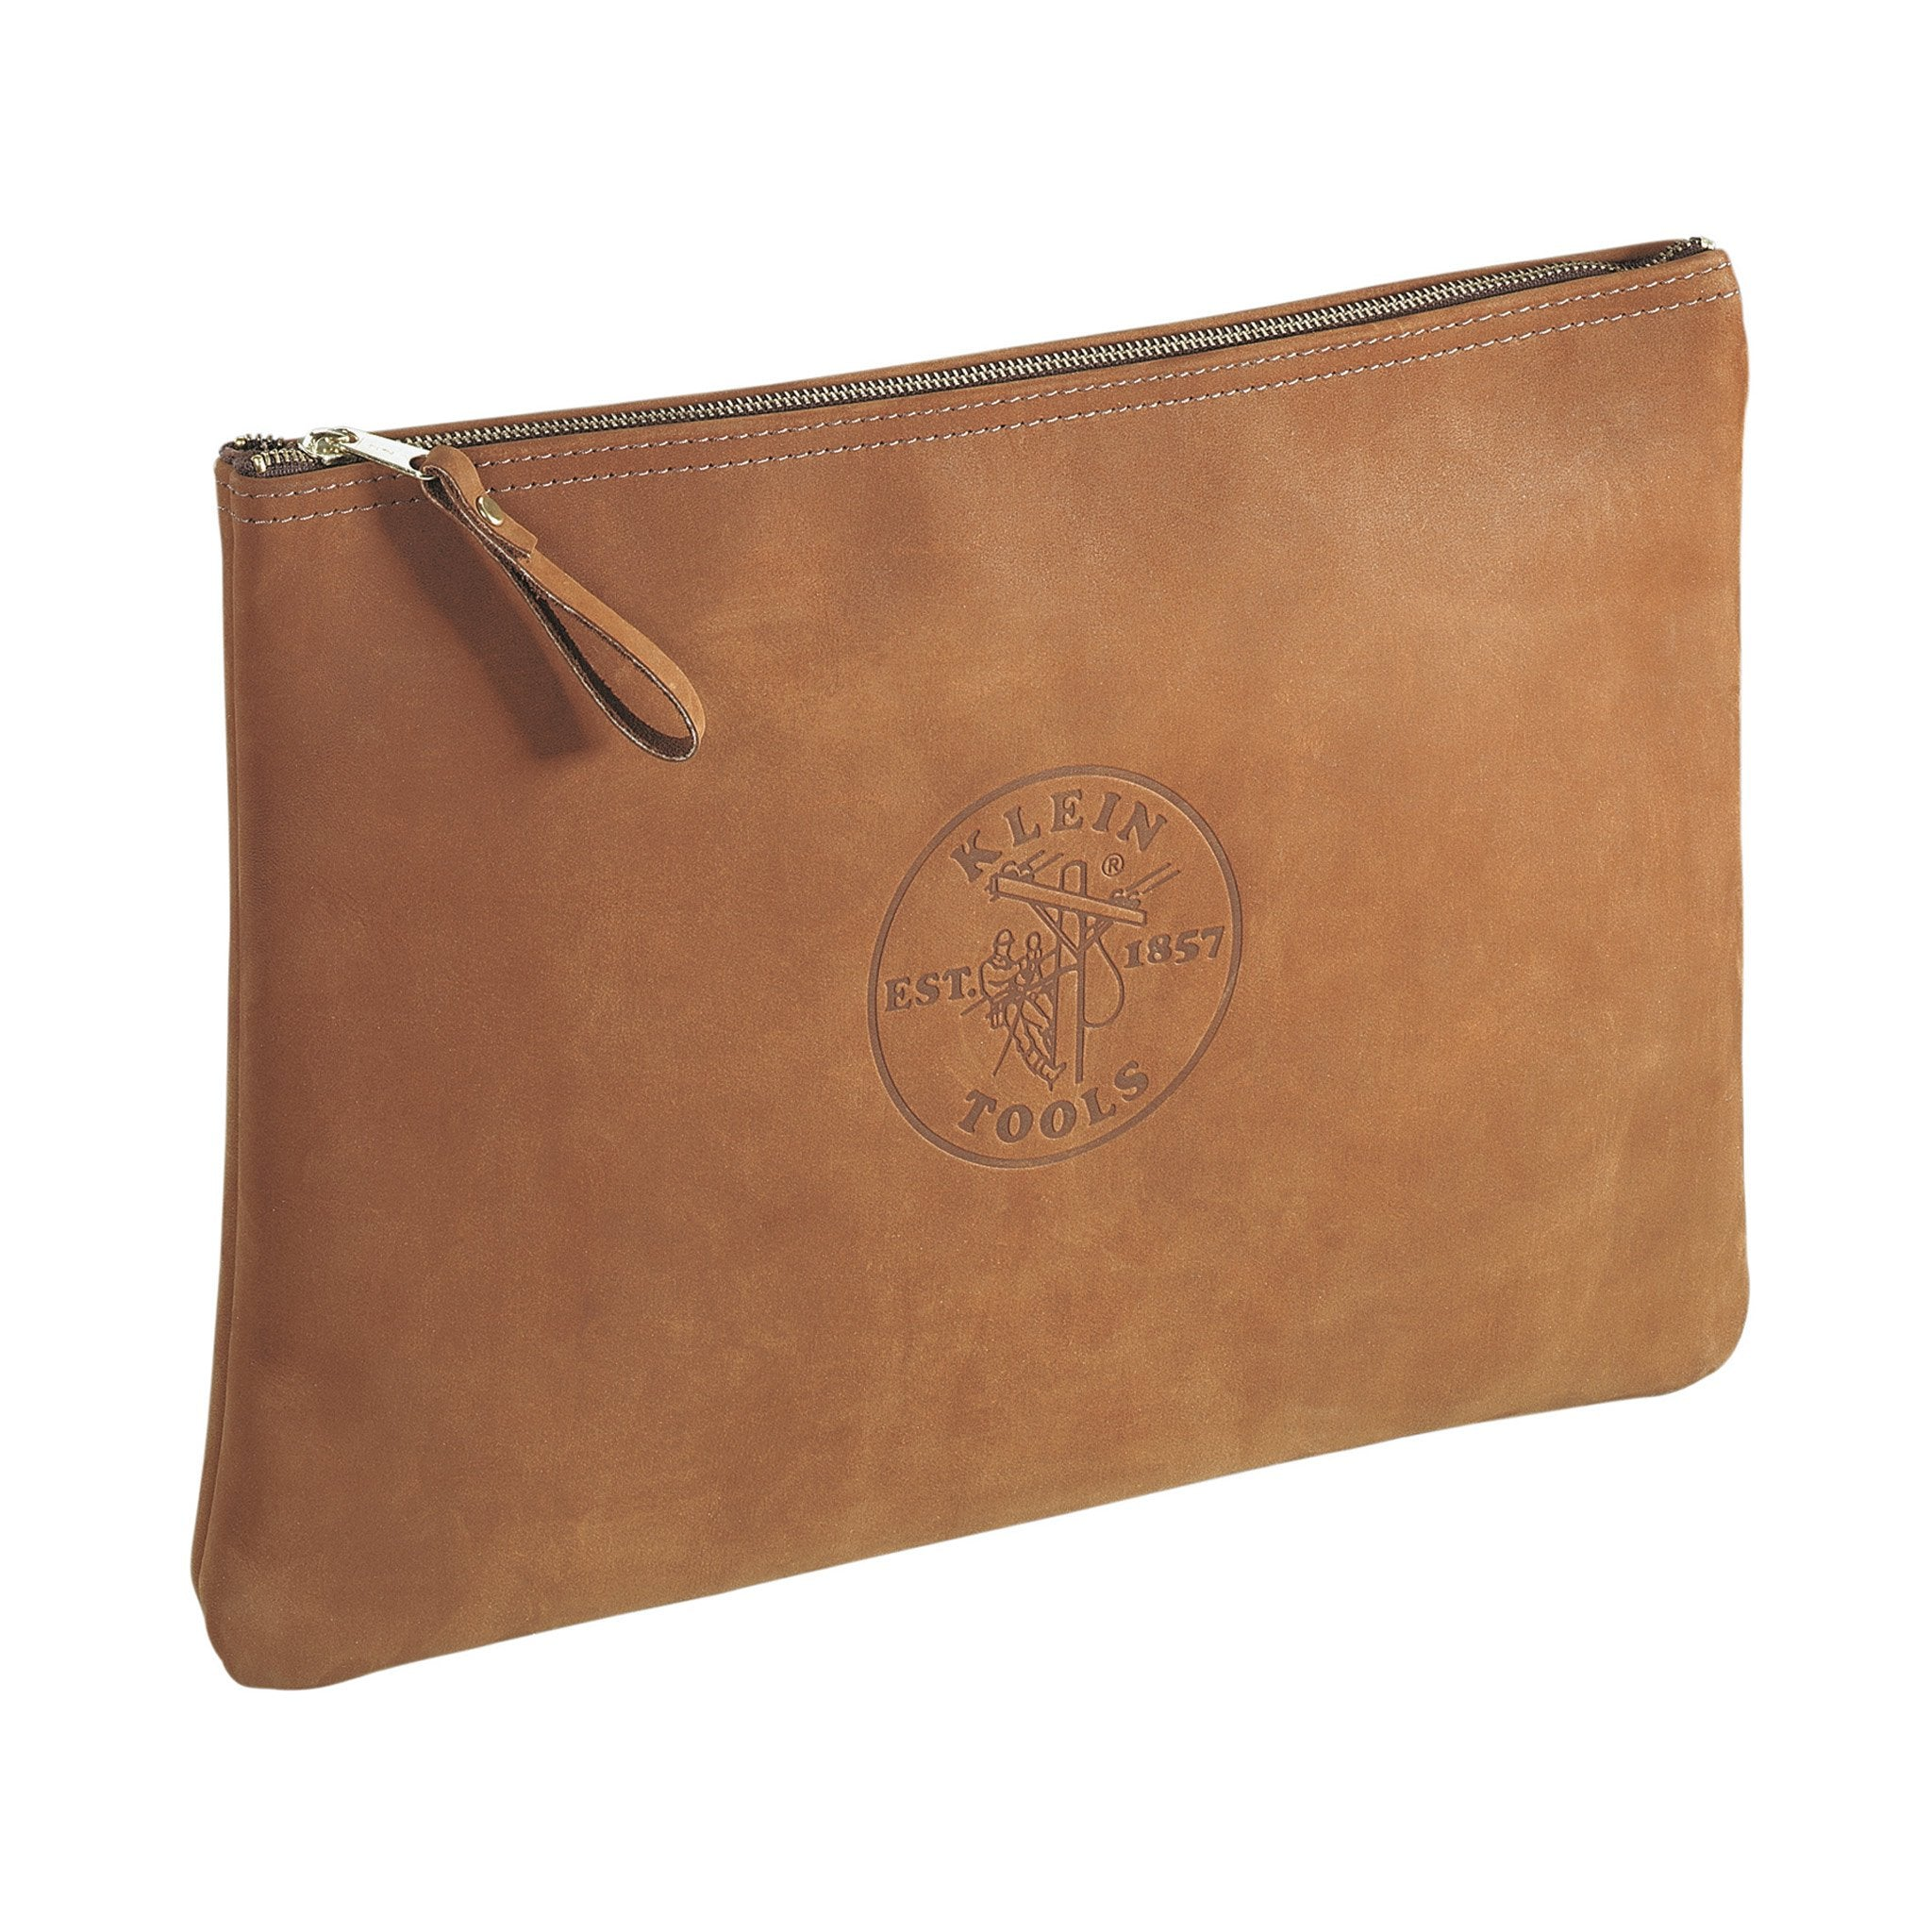 Klein Leather Zipper Bag Portfolio Size - Arthur Beale